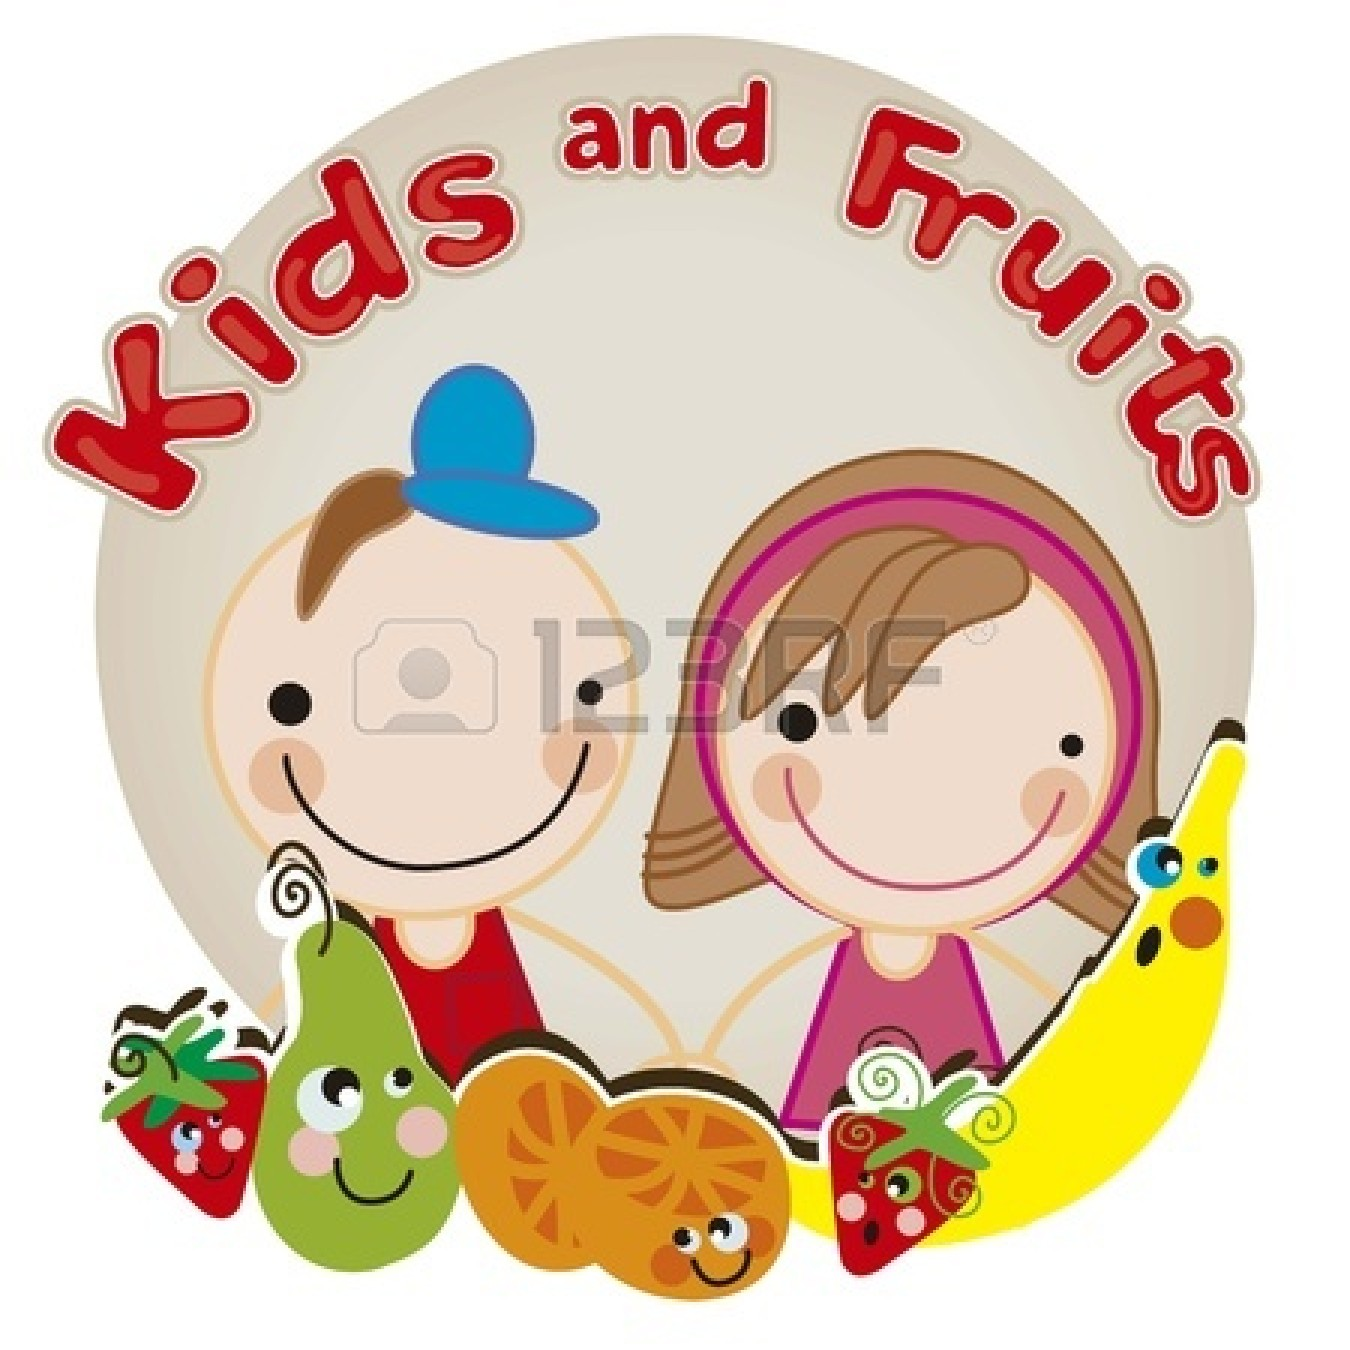 Eating Healthy Clip Art Clipart Panda Free Clipart Images